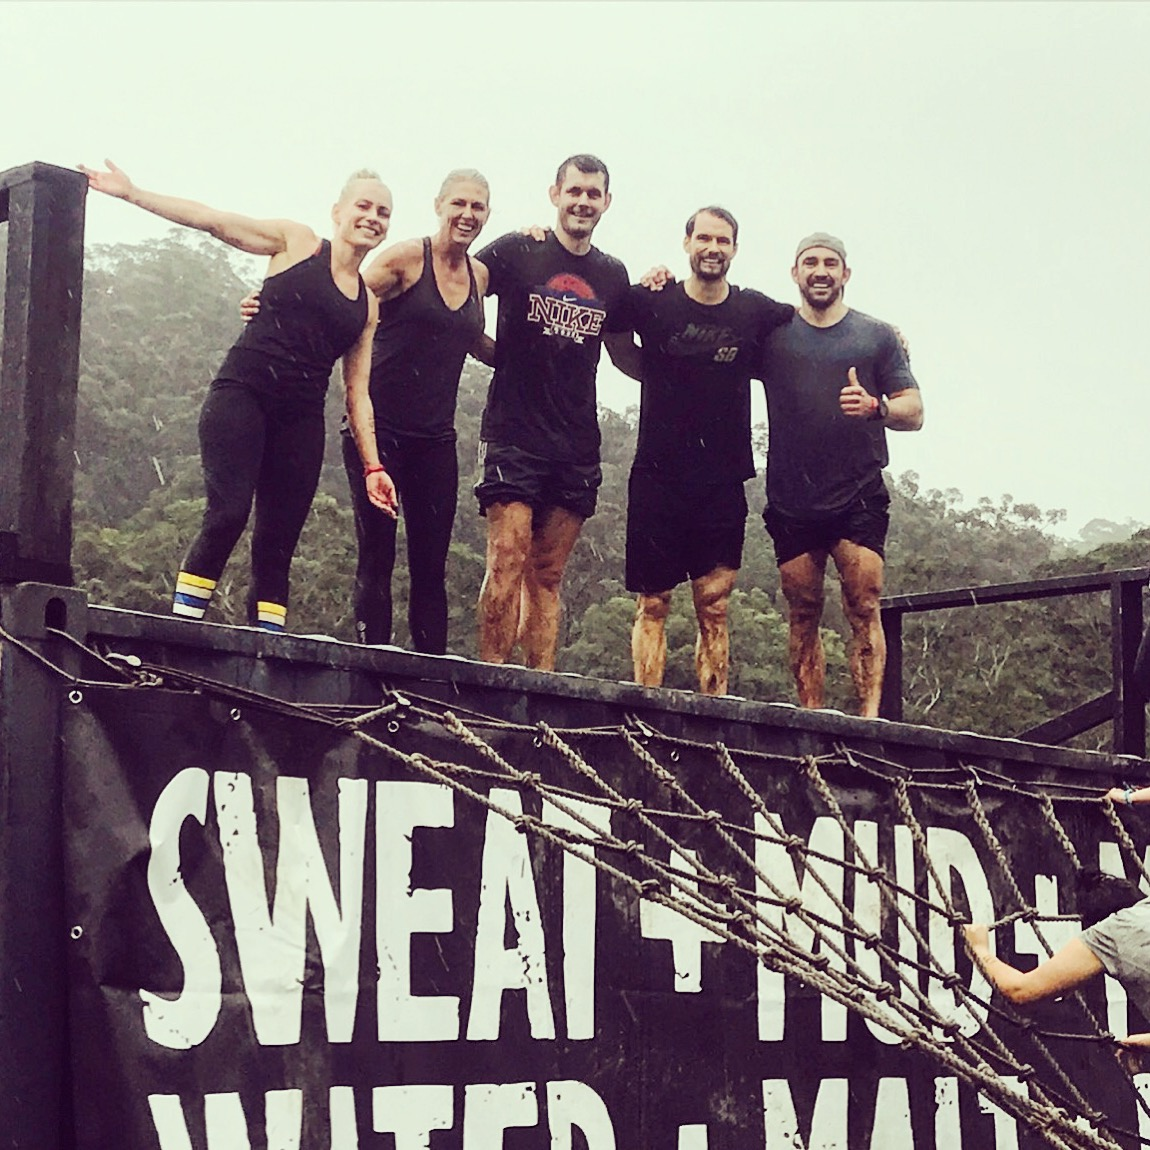 Mud, sweat and tears upon completing 'True Grit' back in June